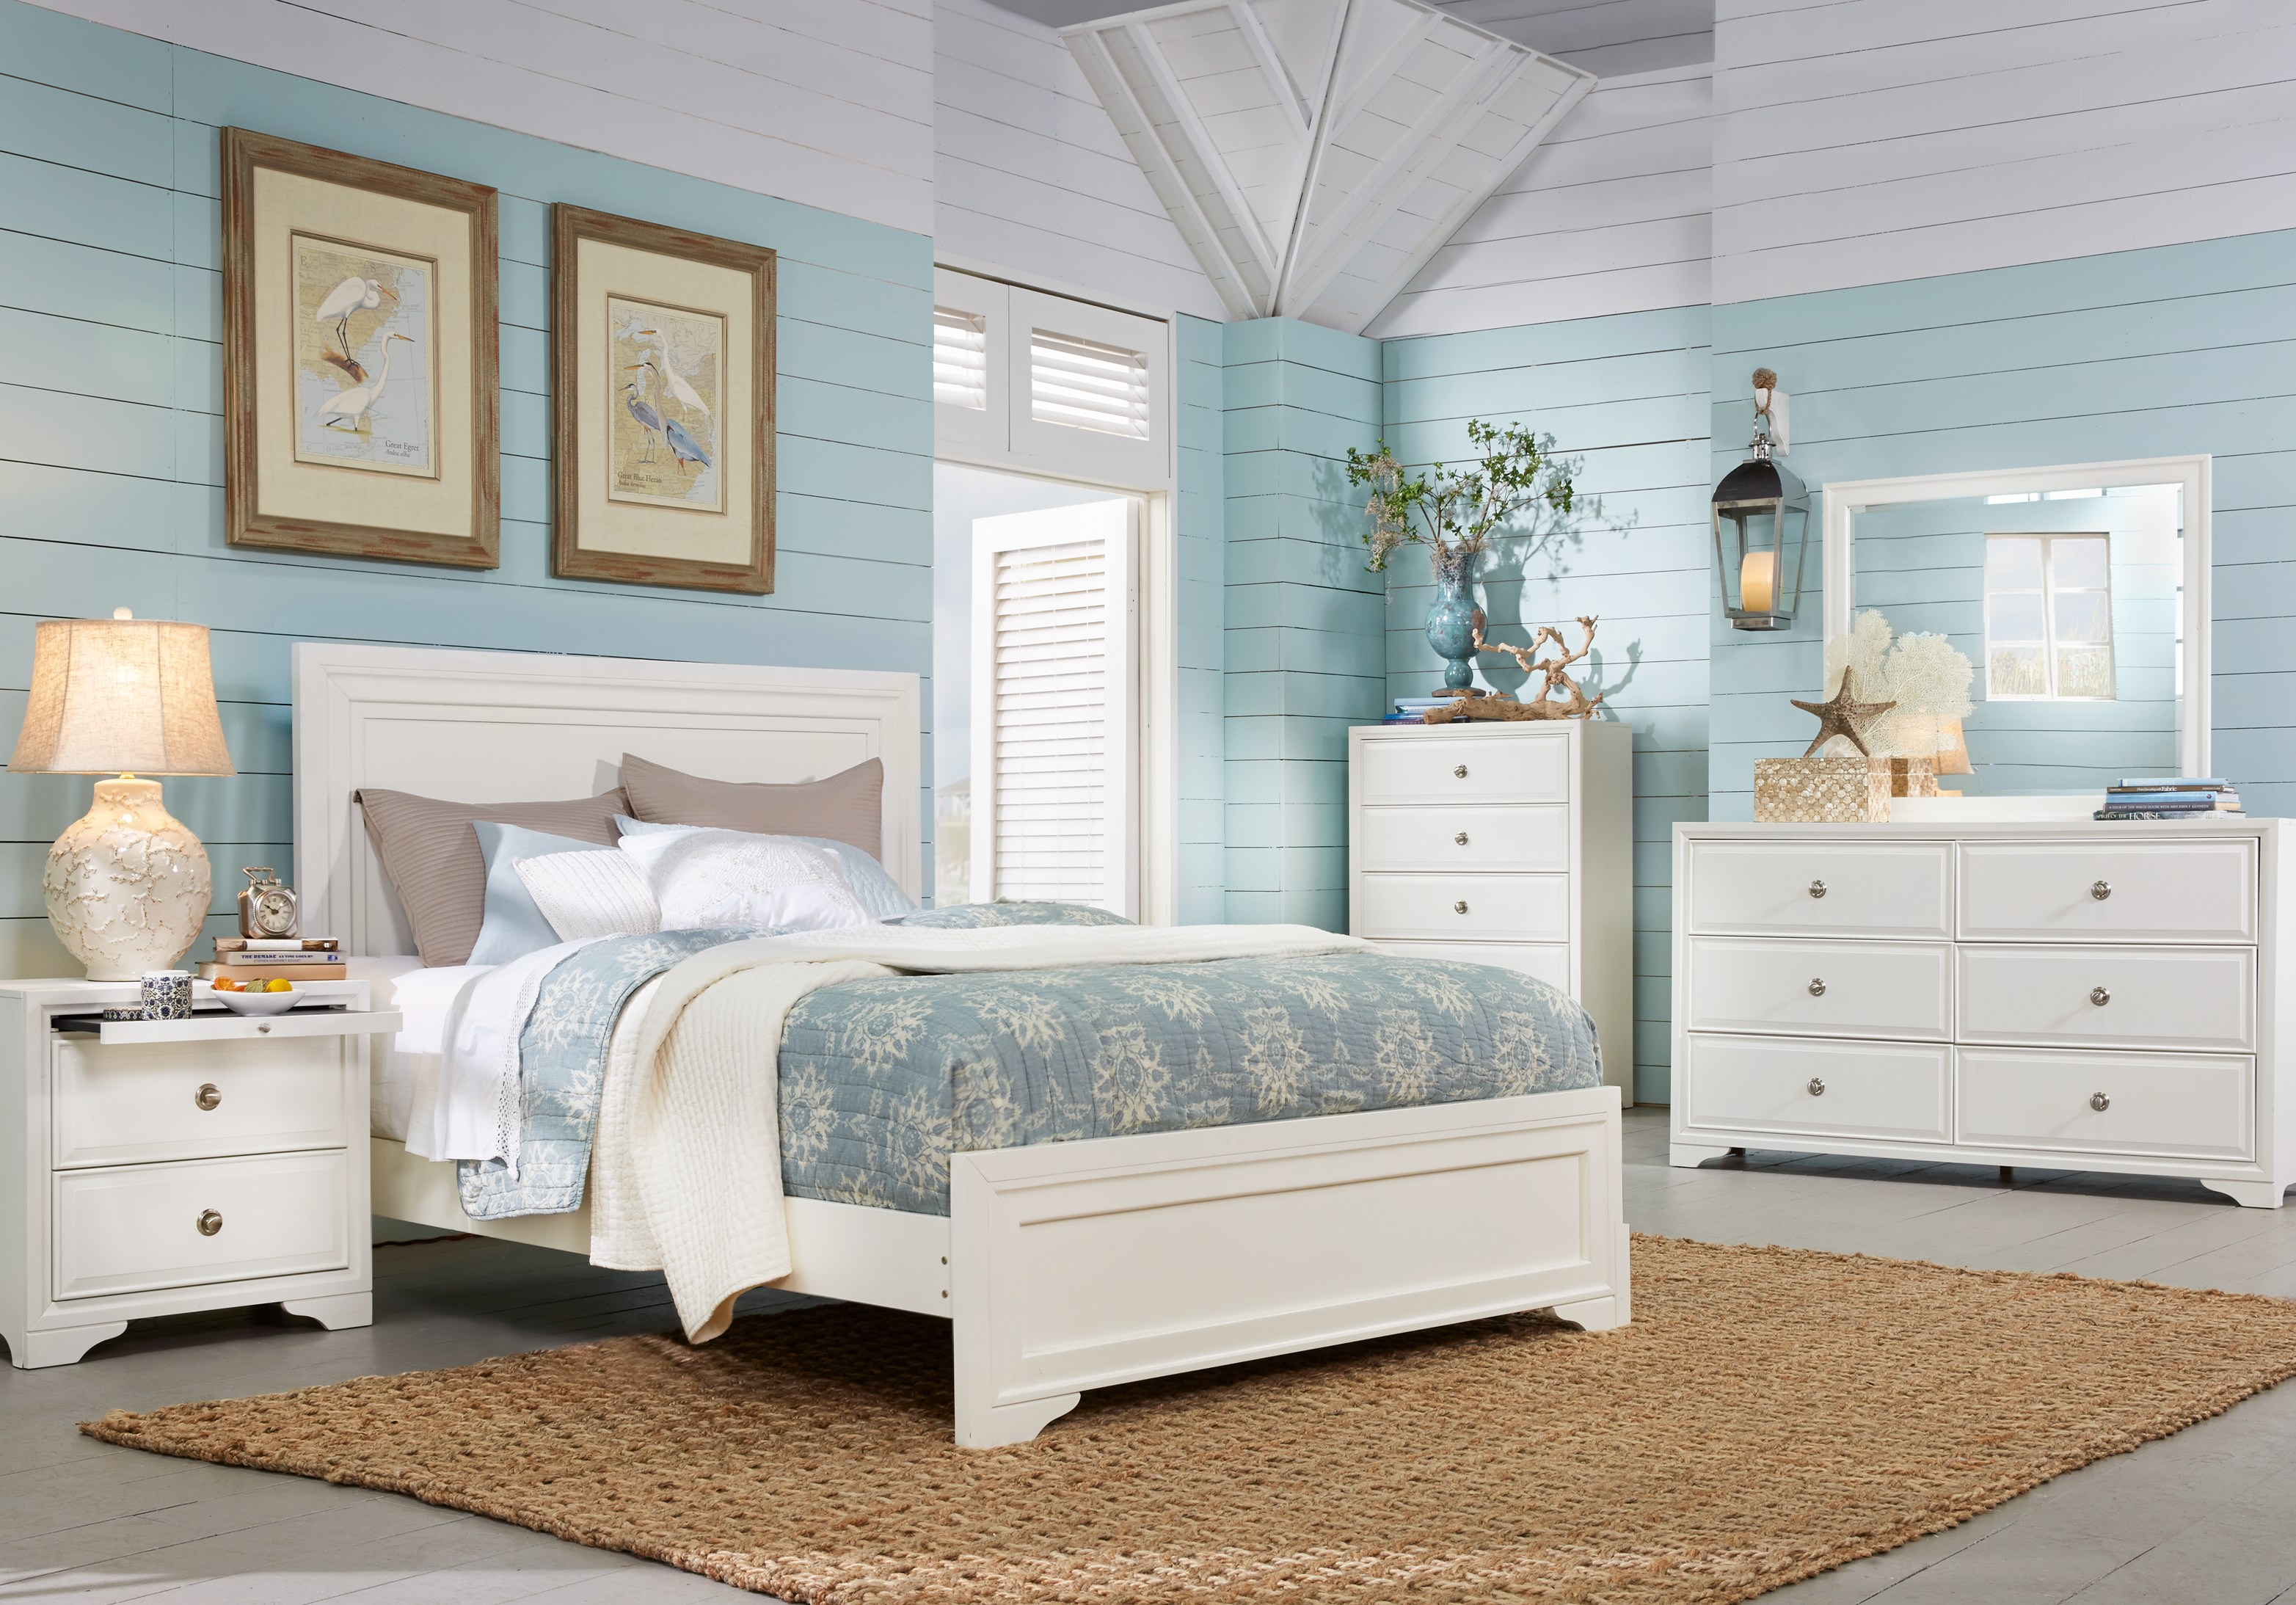 White Queen Bedroom Sets for Sale: 5 & 6-Piece Suites